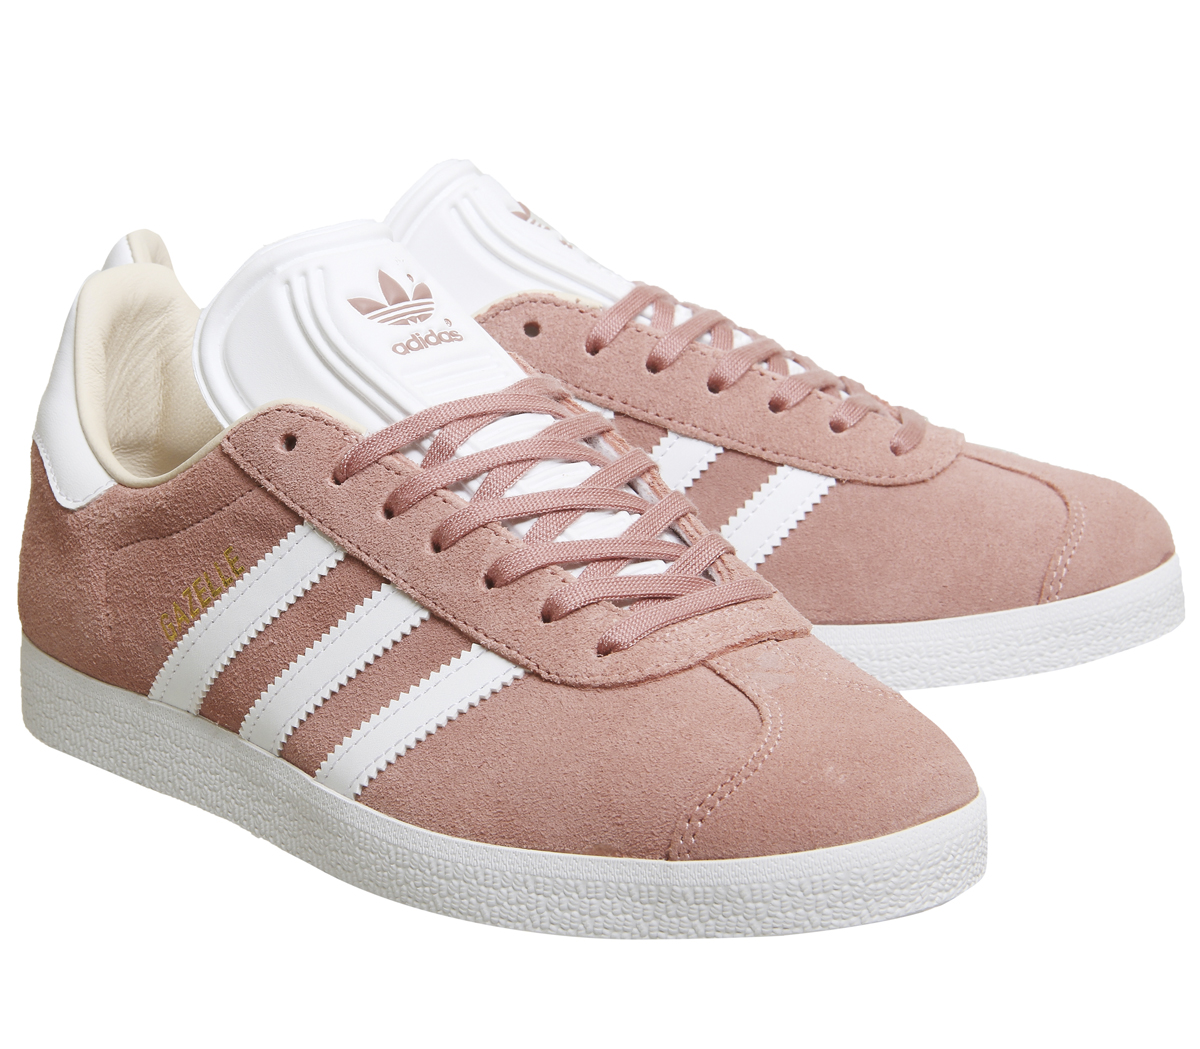 online retailer b3333 4597d Sentinel Thumbnail 6. Sentinel Womens Adidas Gazelle Trainers ASH PEARL  WHITE Trainers Shoes. Sentinel Thumbnail 7